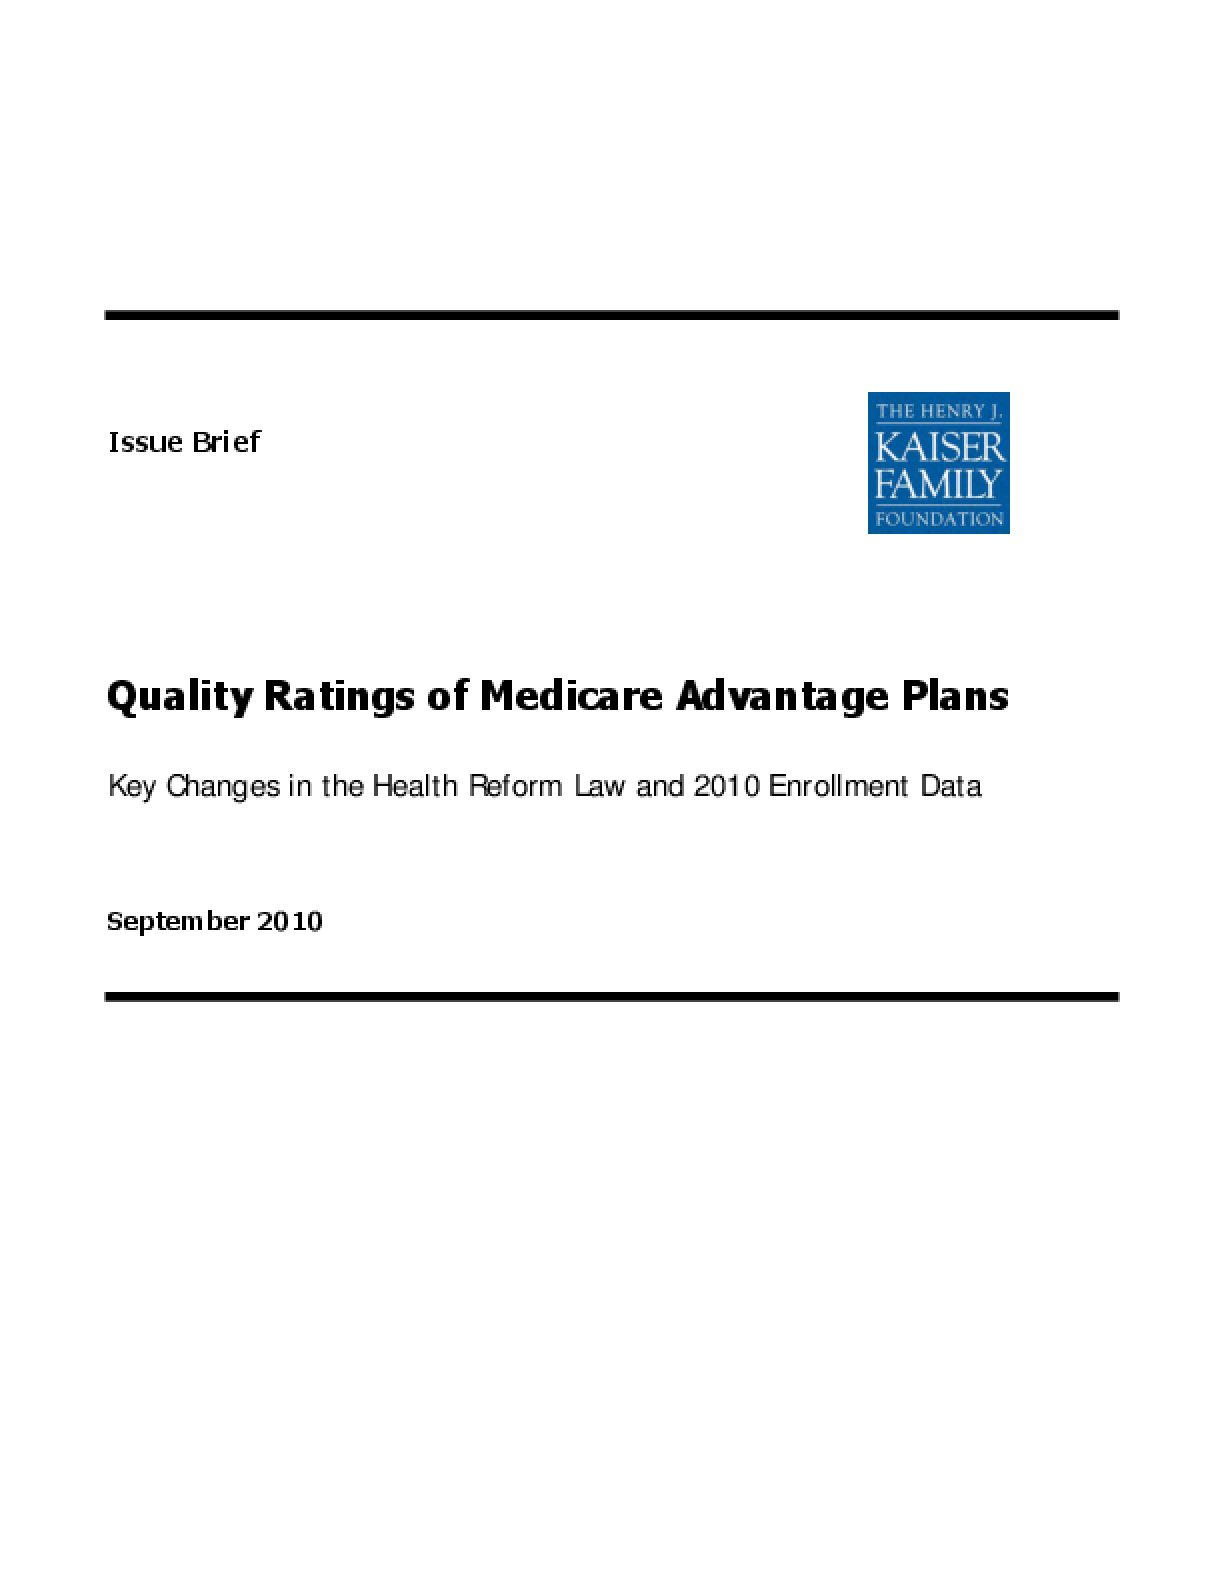 Quality Ratings of Medicare Advantage Plans: Key Changes in the Health Reform Law and 2010 Enrollment Data